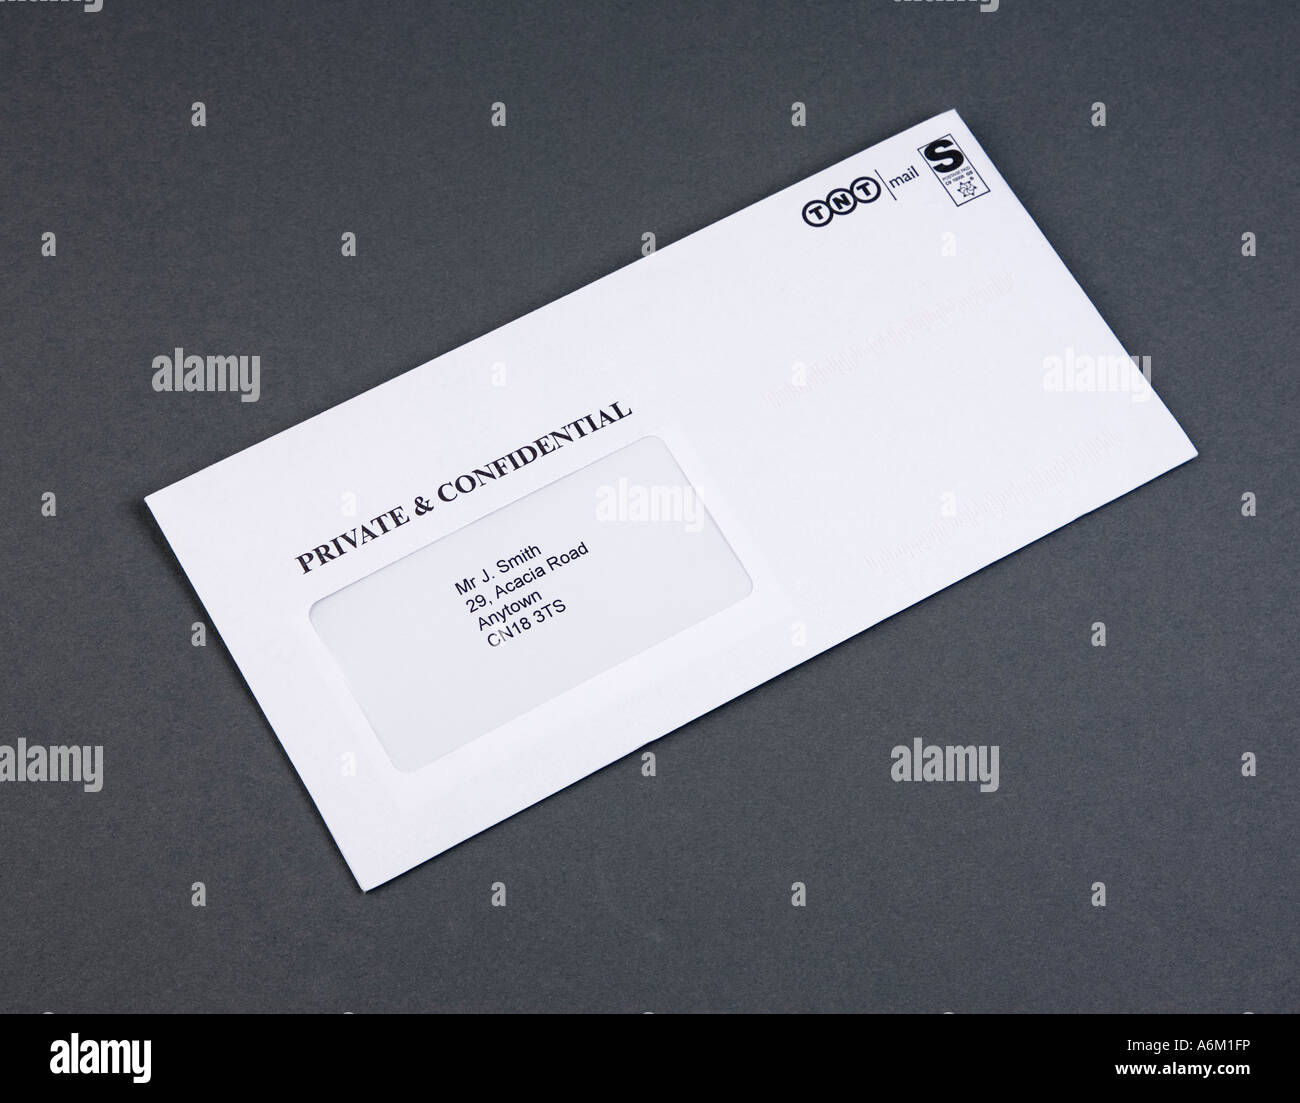 letter marked 'Private & Confidential' - Stock Image